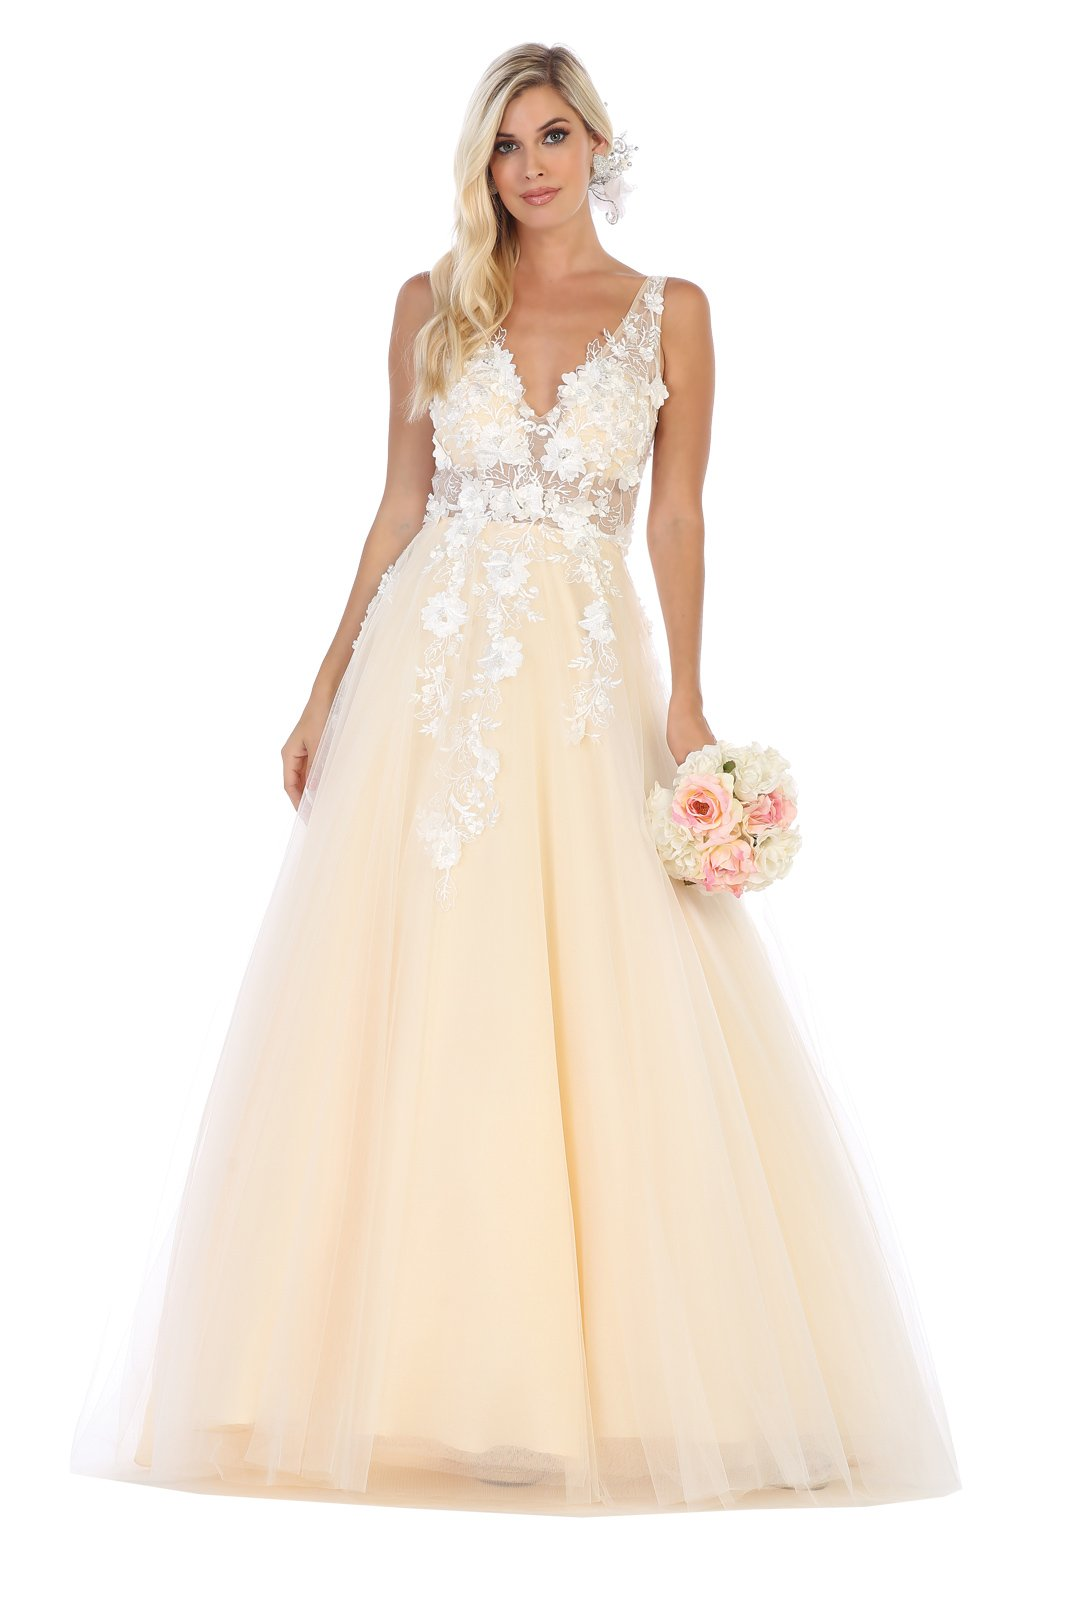 Ivory/Champaign Lace Applique Sheer Bodice Prom Dress With Full Tulle Skirt